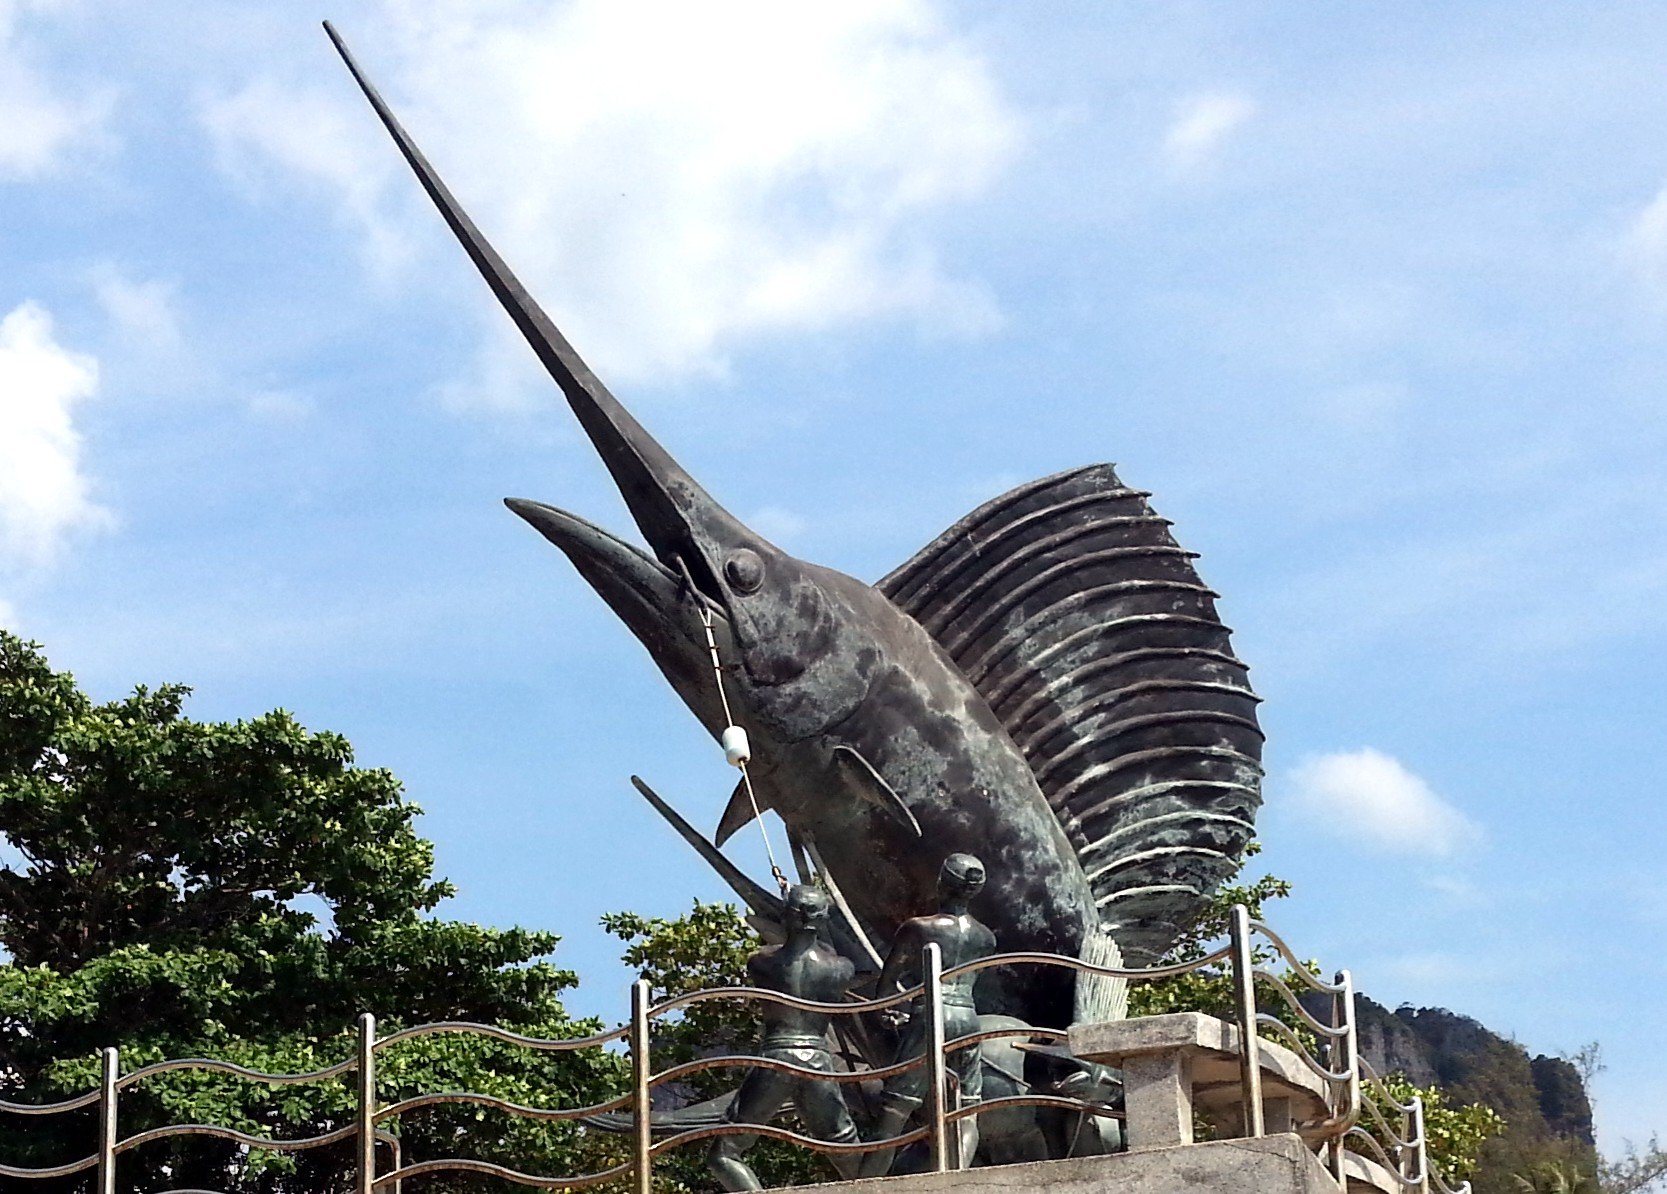 'bplaa len reua' is Thai word for sailfish